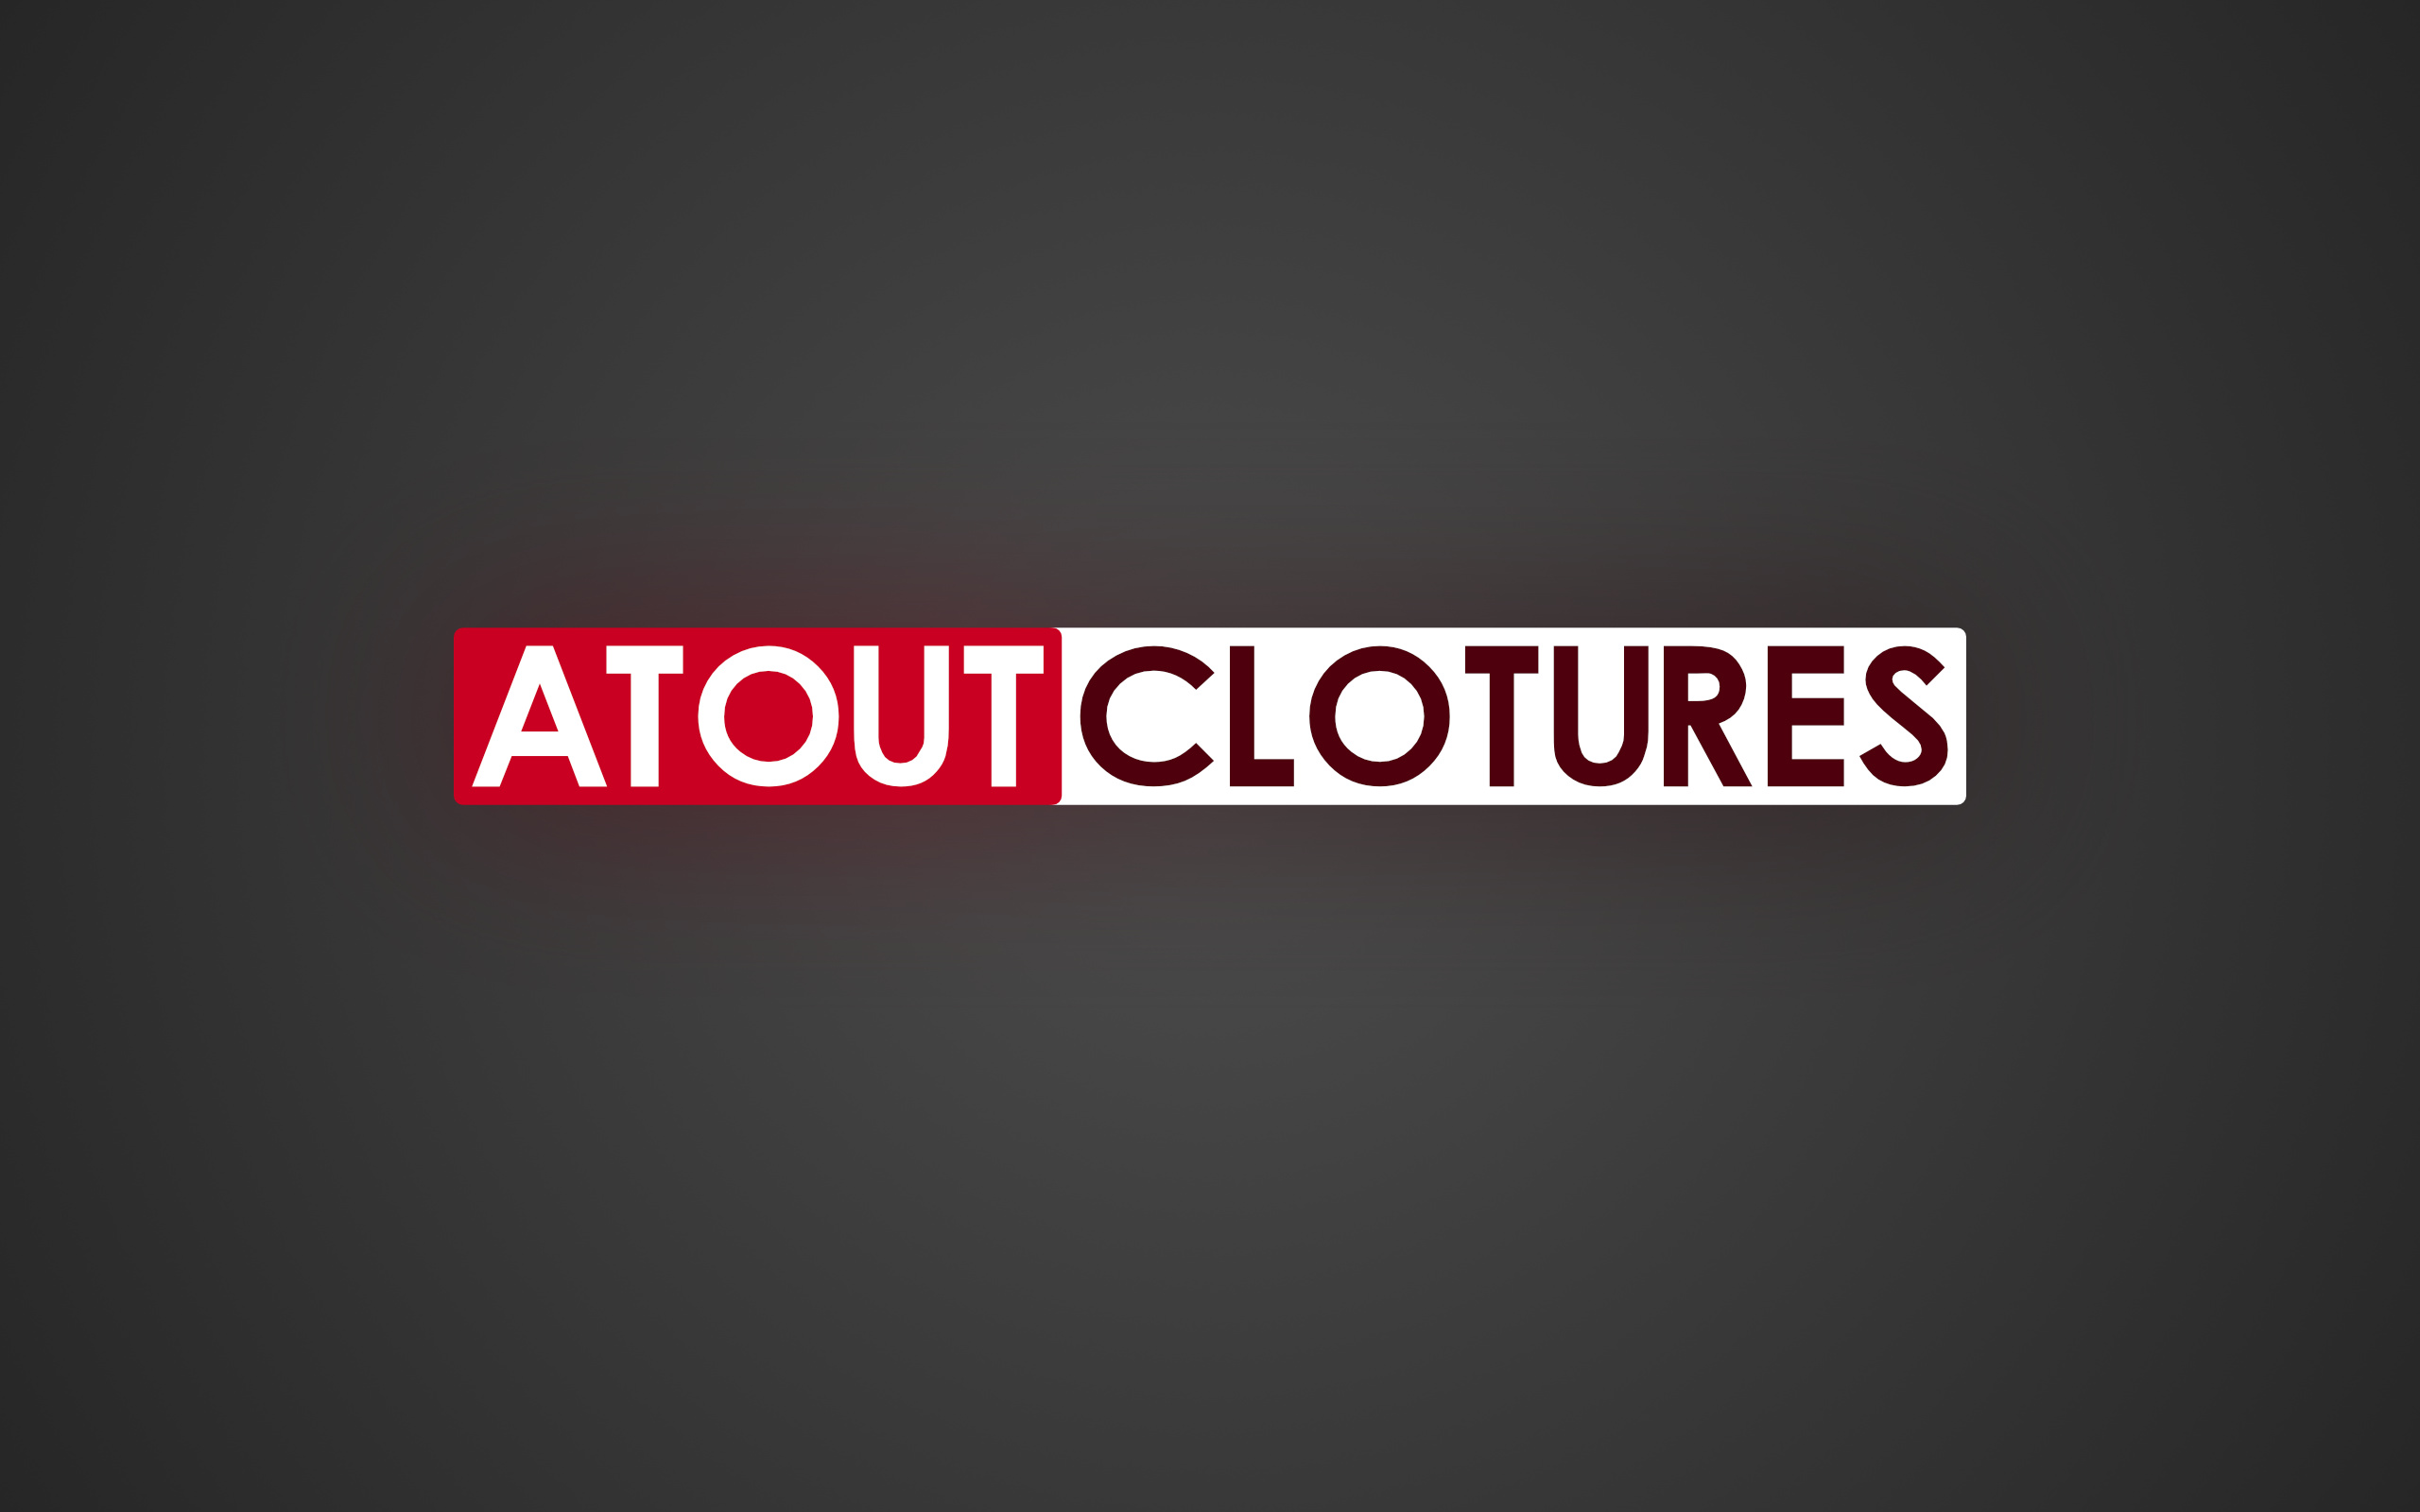 logo-atout-clotures